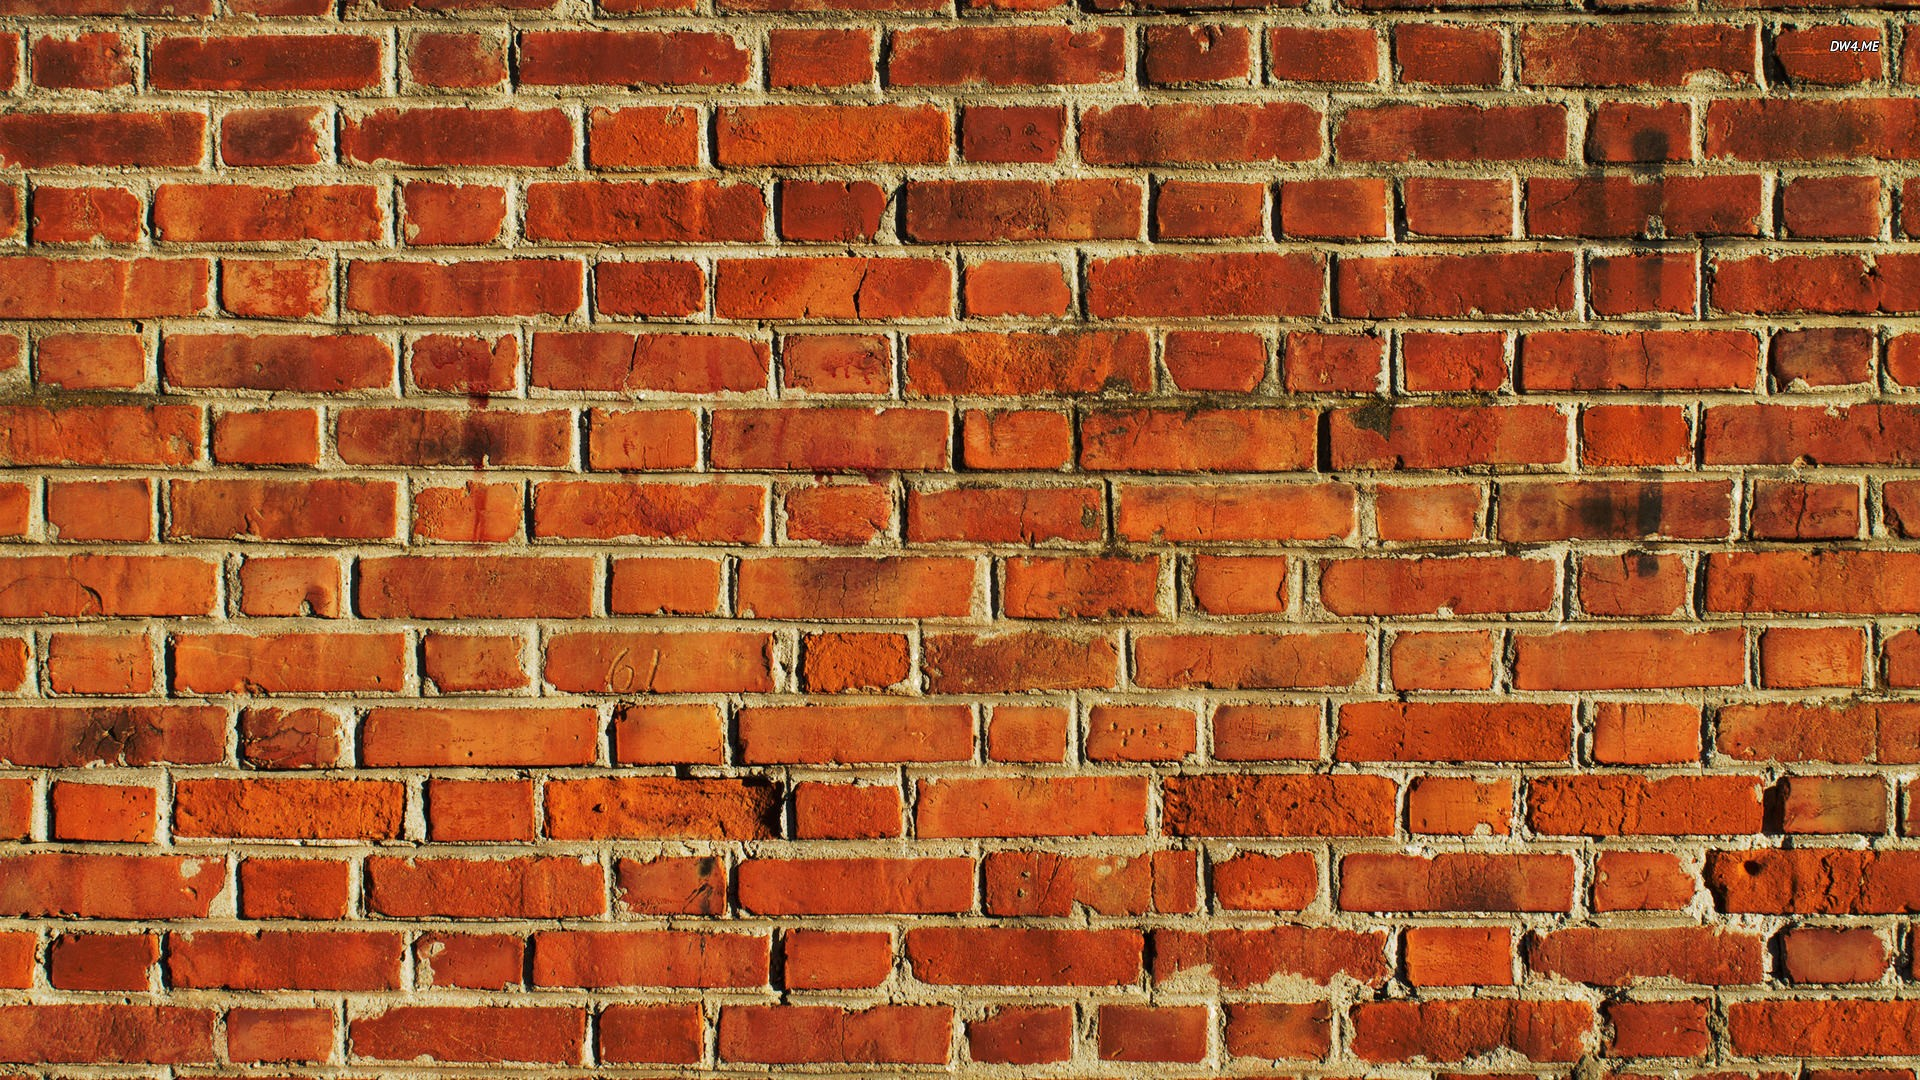 brick wall background download free stunning hd backgrounds for